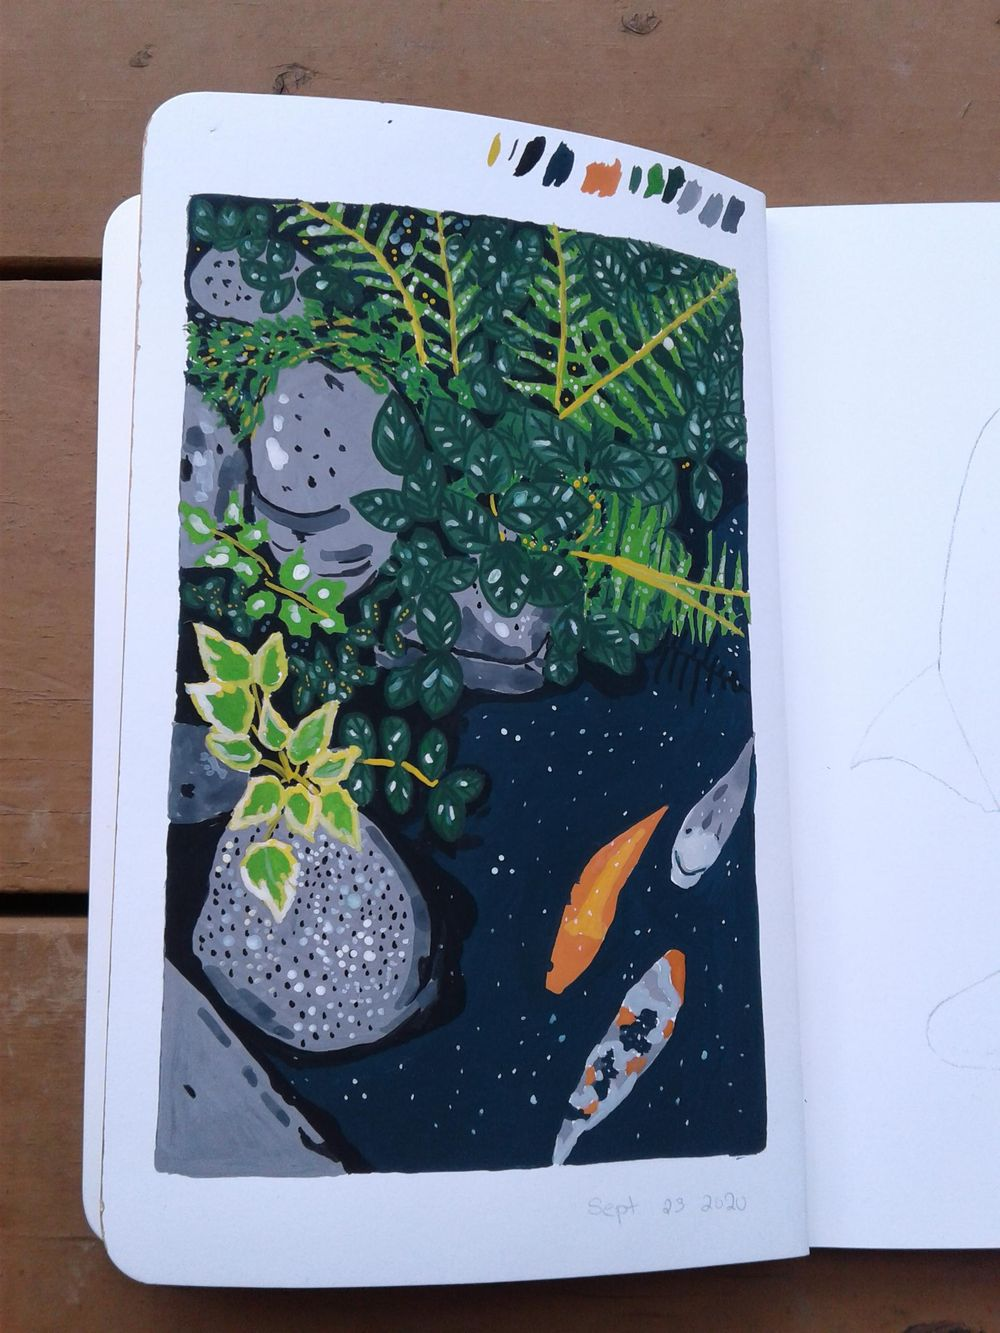 Gardens - image 2 - student project